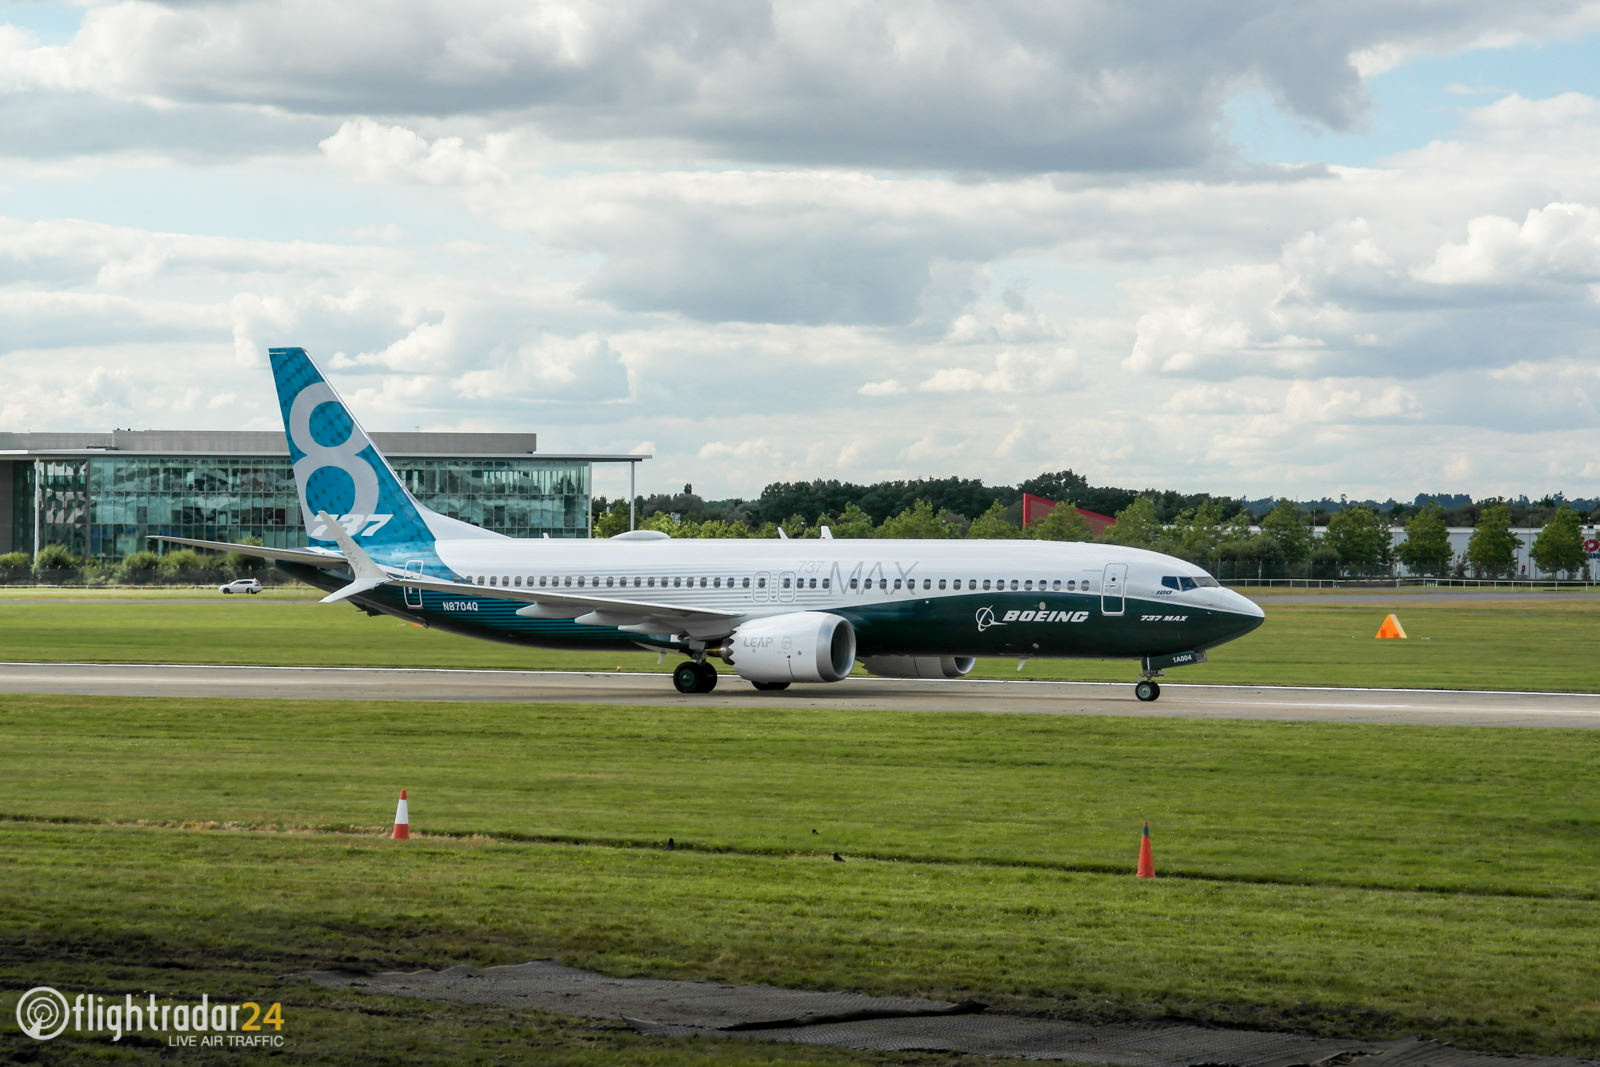 The Boeing 737 MAX taxiing